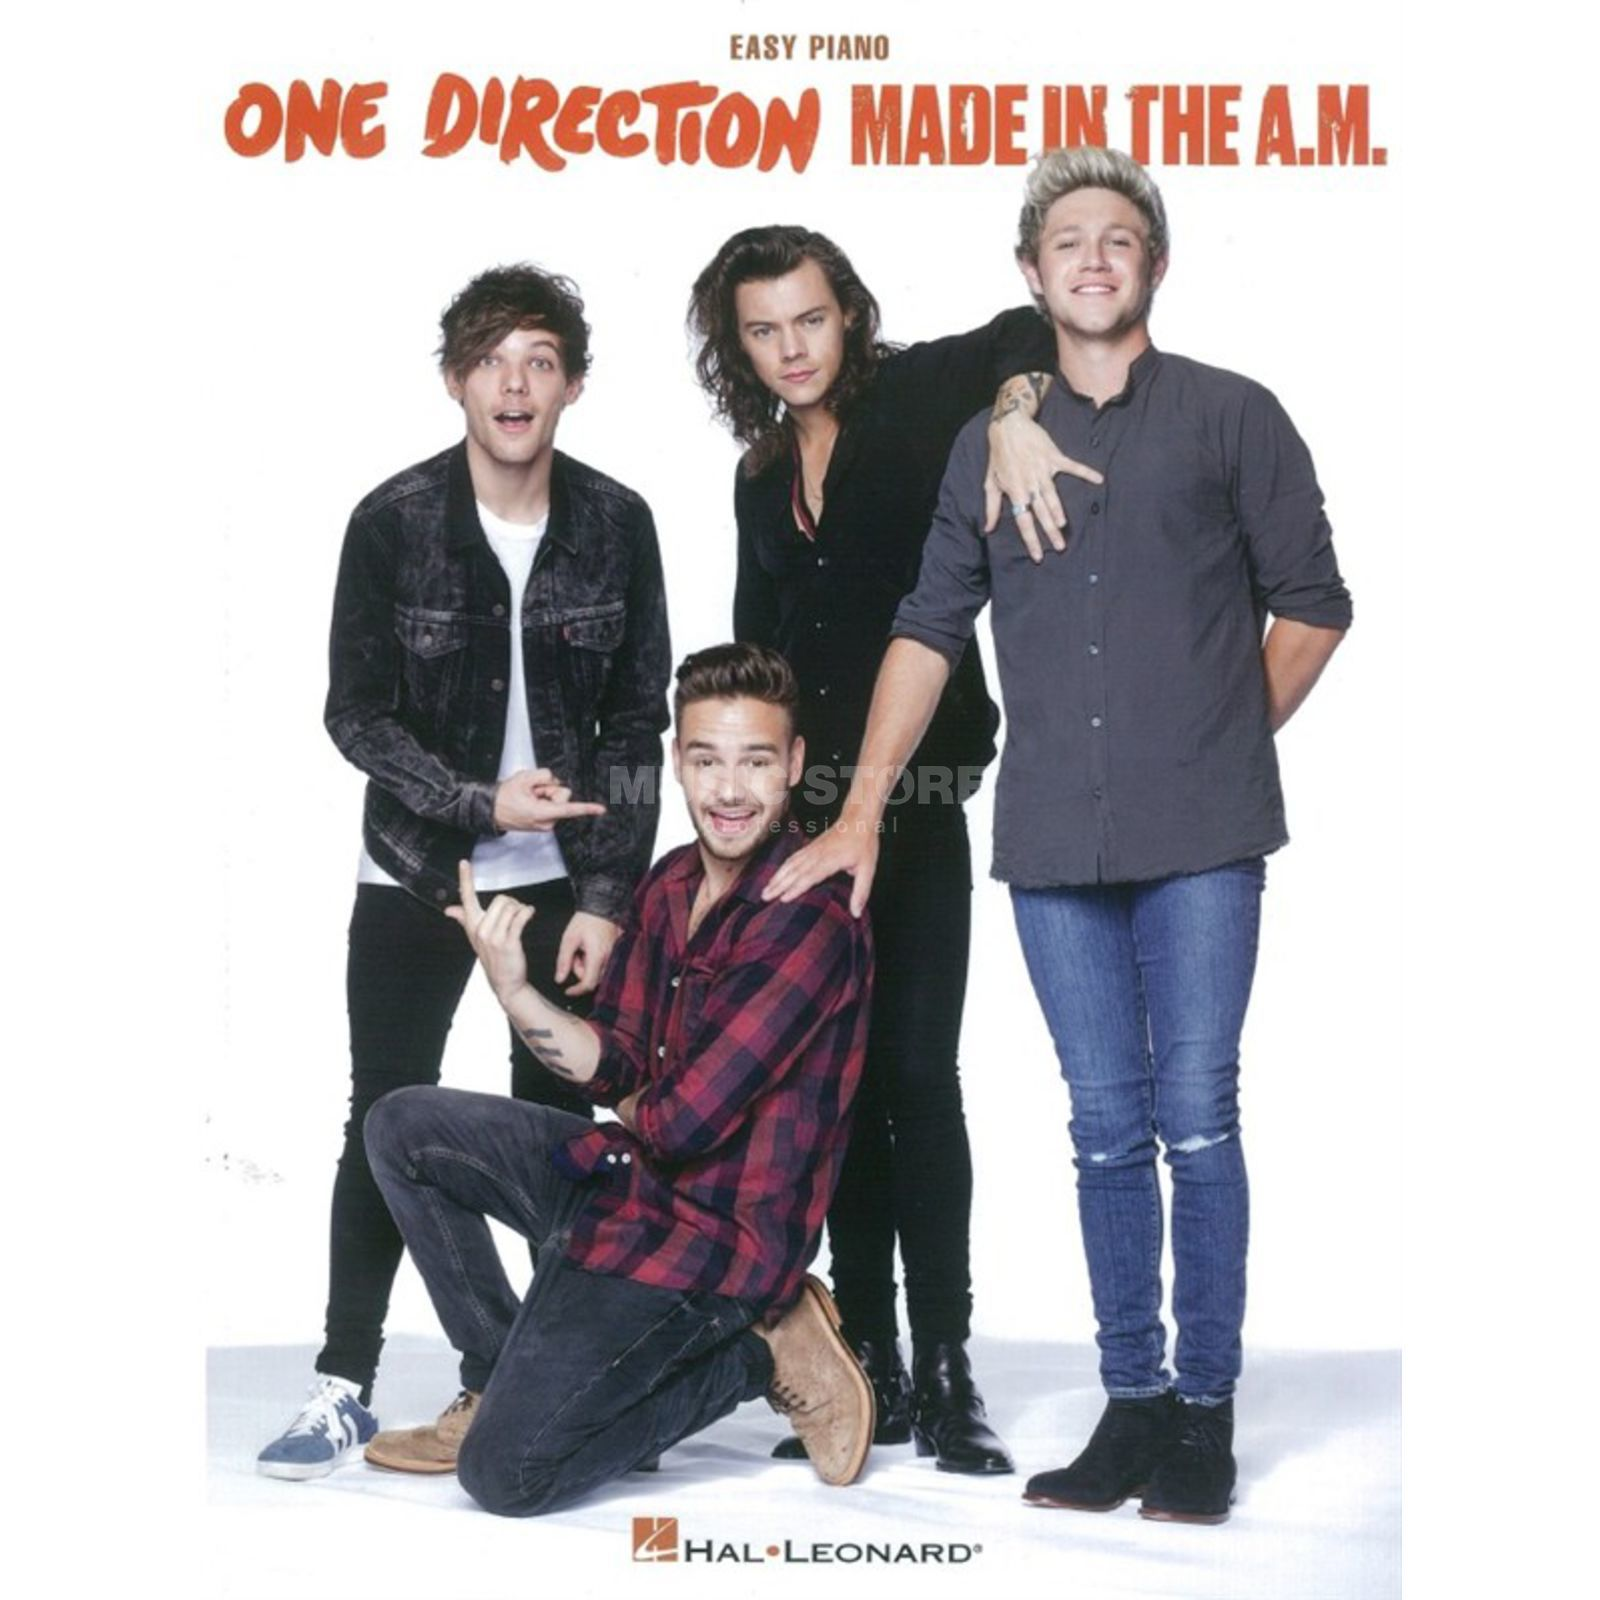 Hal Leonard One Direction: Made In The A.M. - Easy Piano/Lyrics & Chords Produktbillede